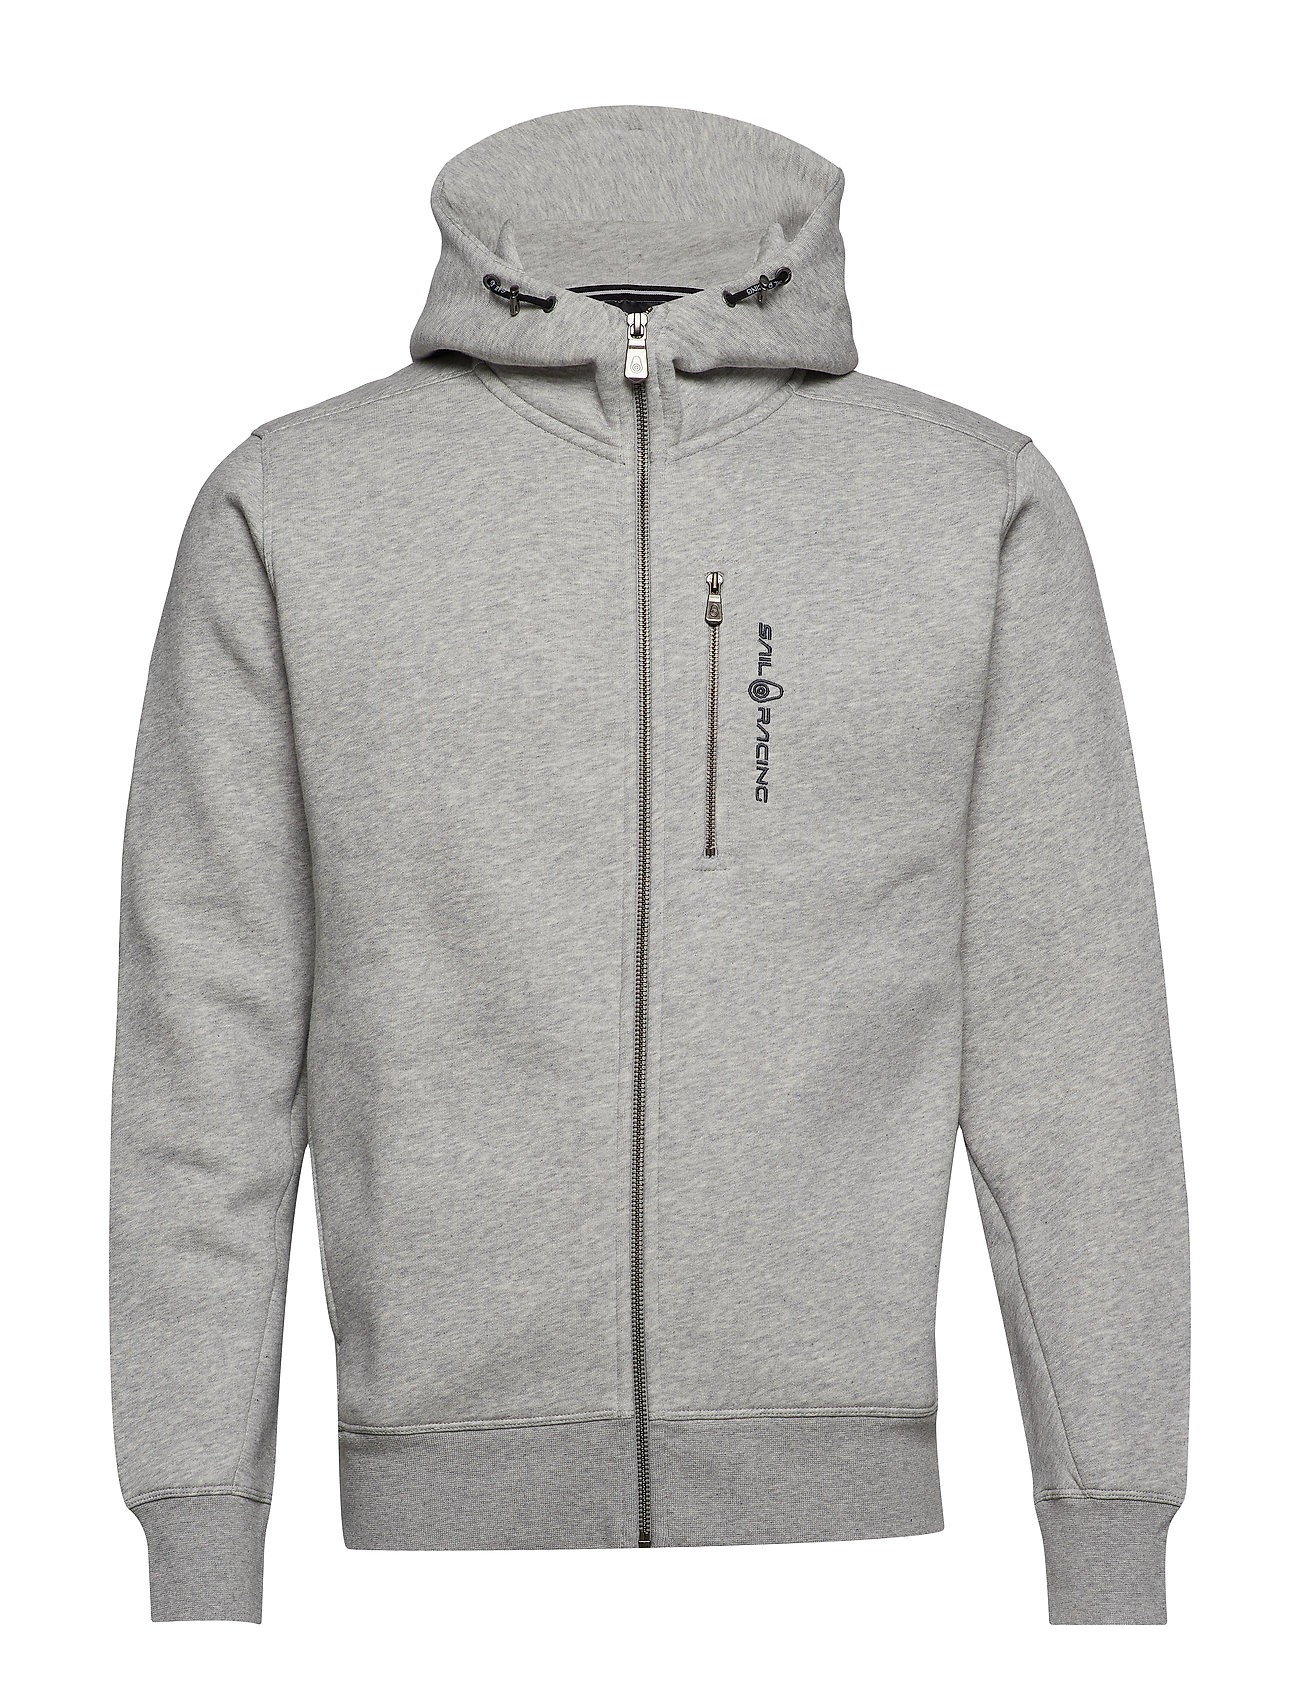 Sail Racing BOWMAN ZIP HOOD - GREY MEL